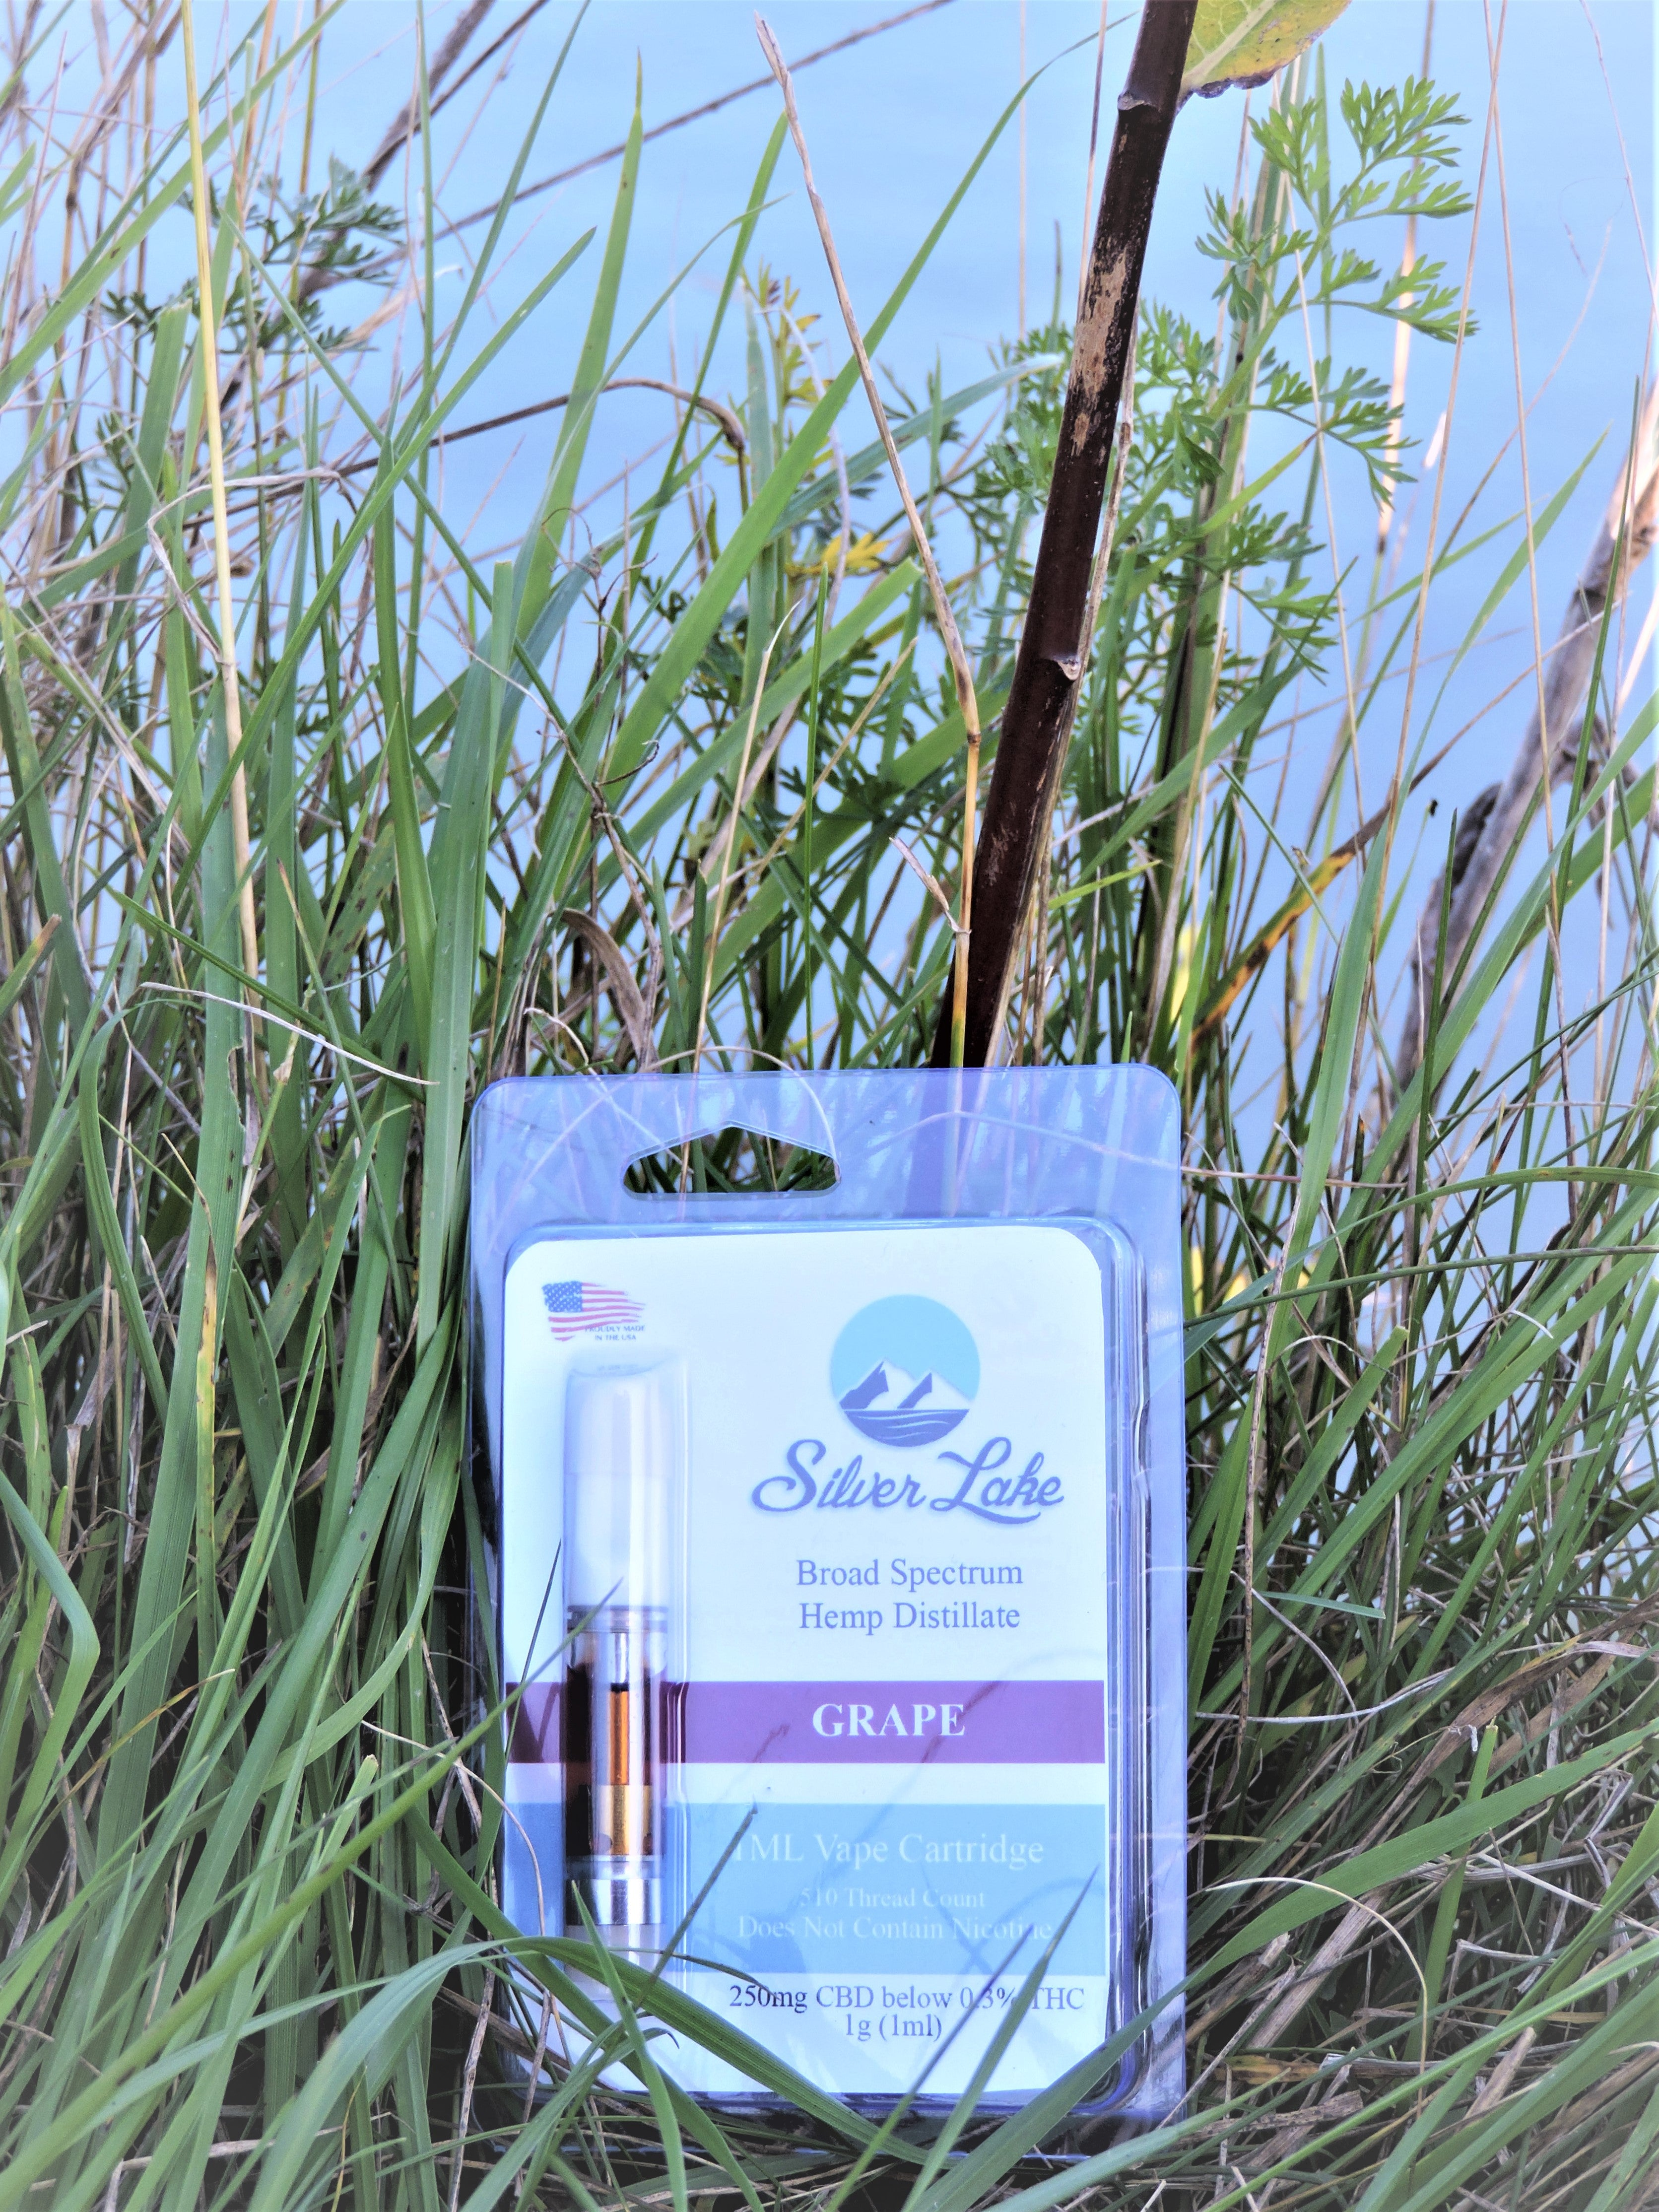 Naturally Flavored Pre-Filled Vape Cart | Silver Lake